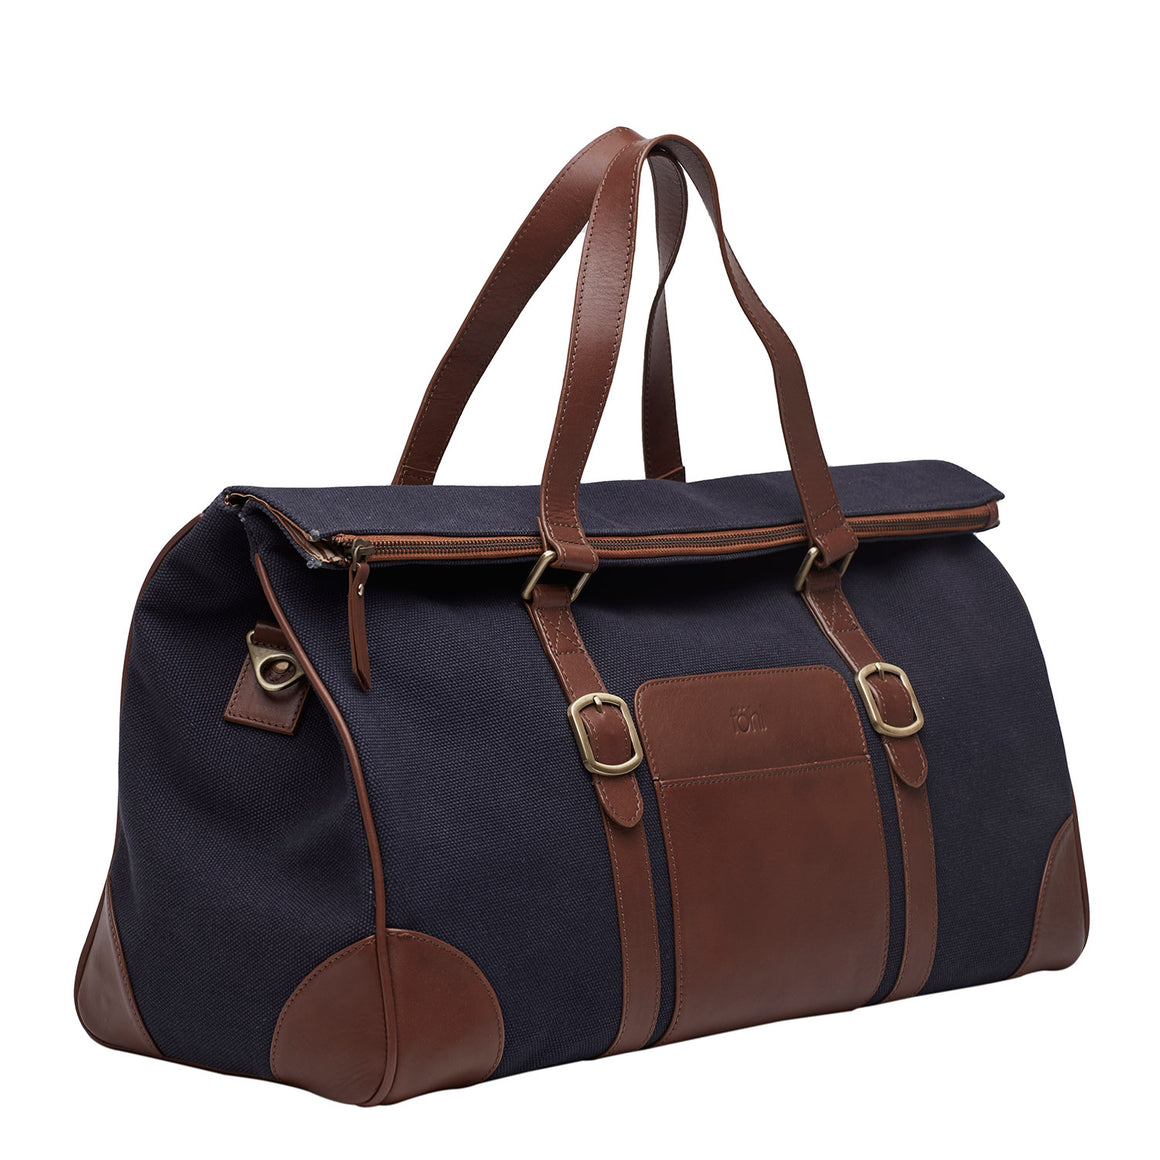 DL 0003 - TOHL PONTE MEN'S DUFFLE BAG - NAVY